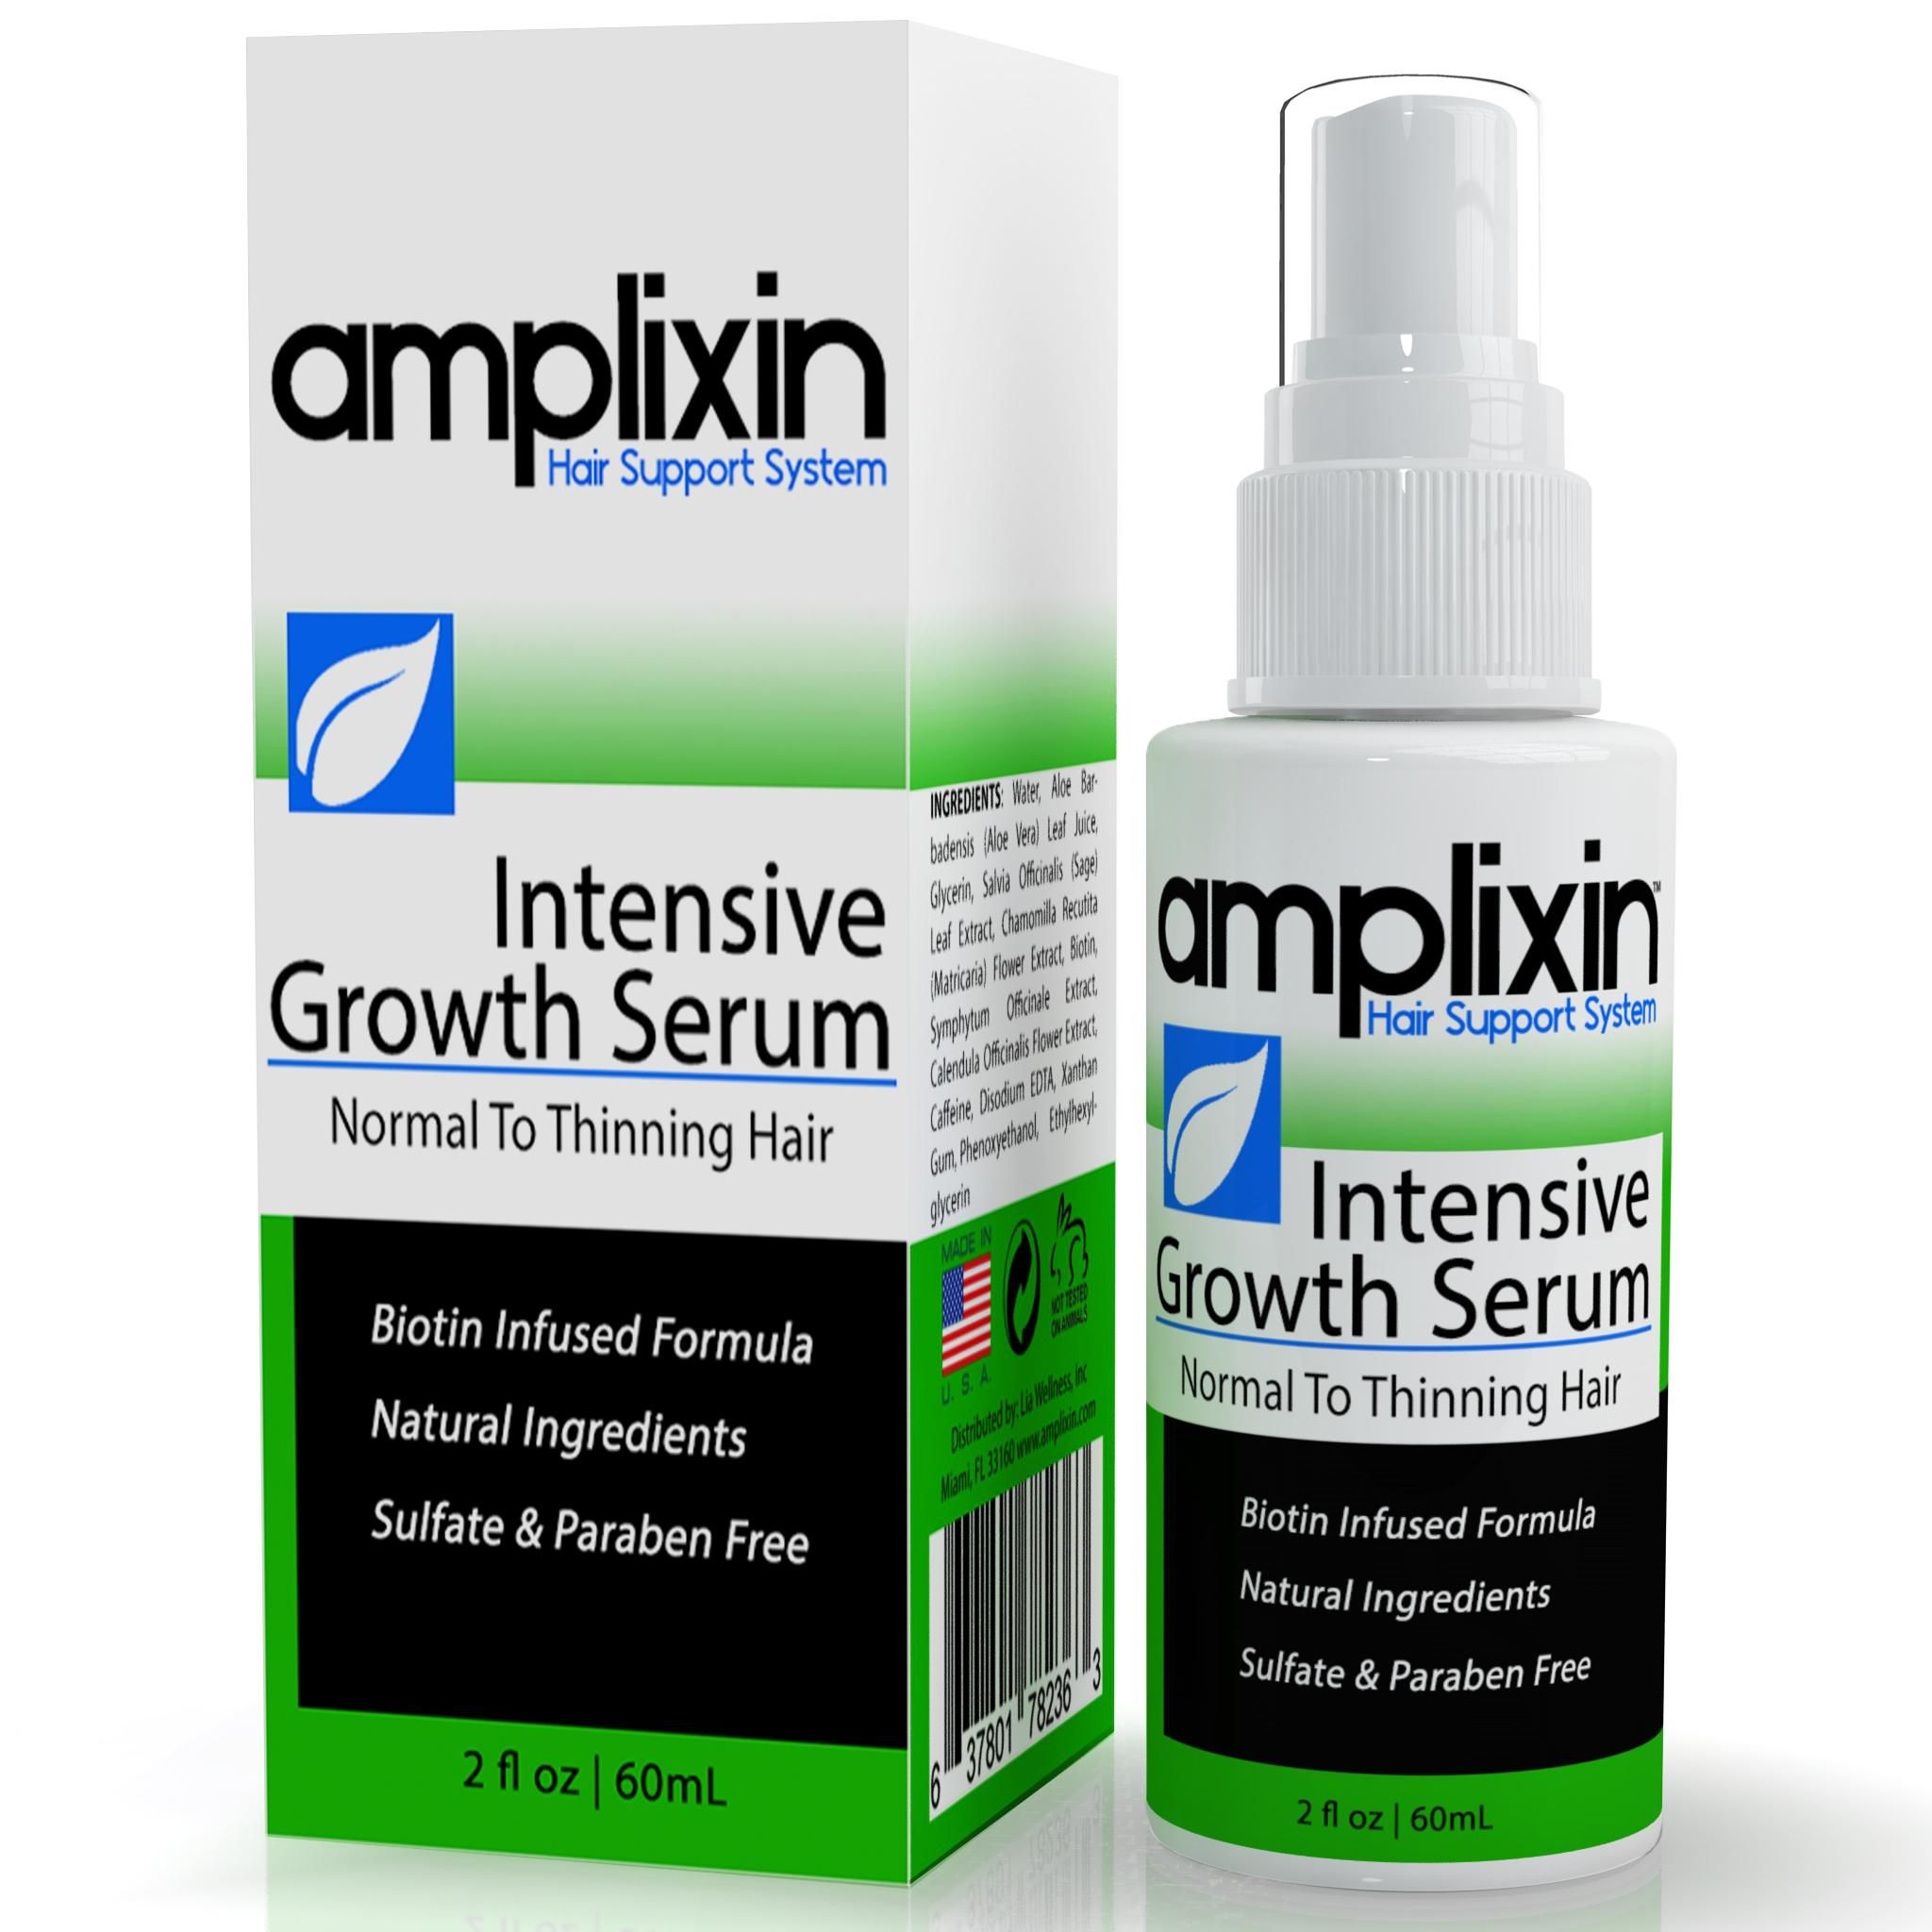 Amplixin Intensive Hair Growth Serum Against